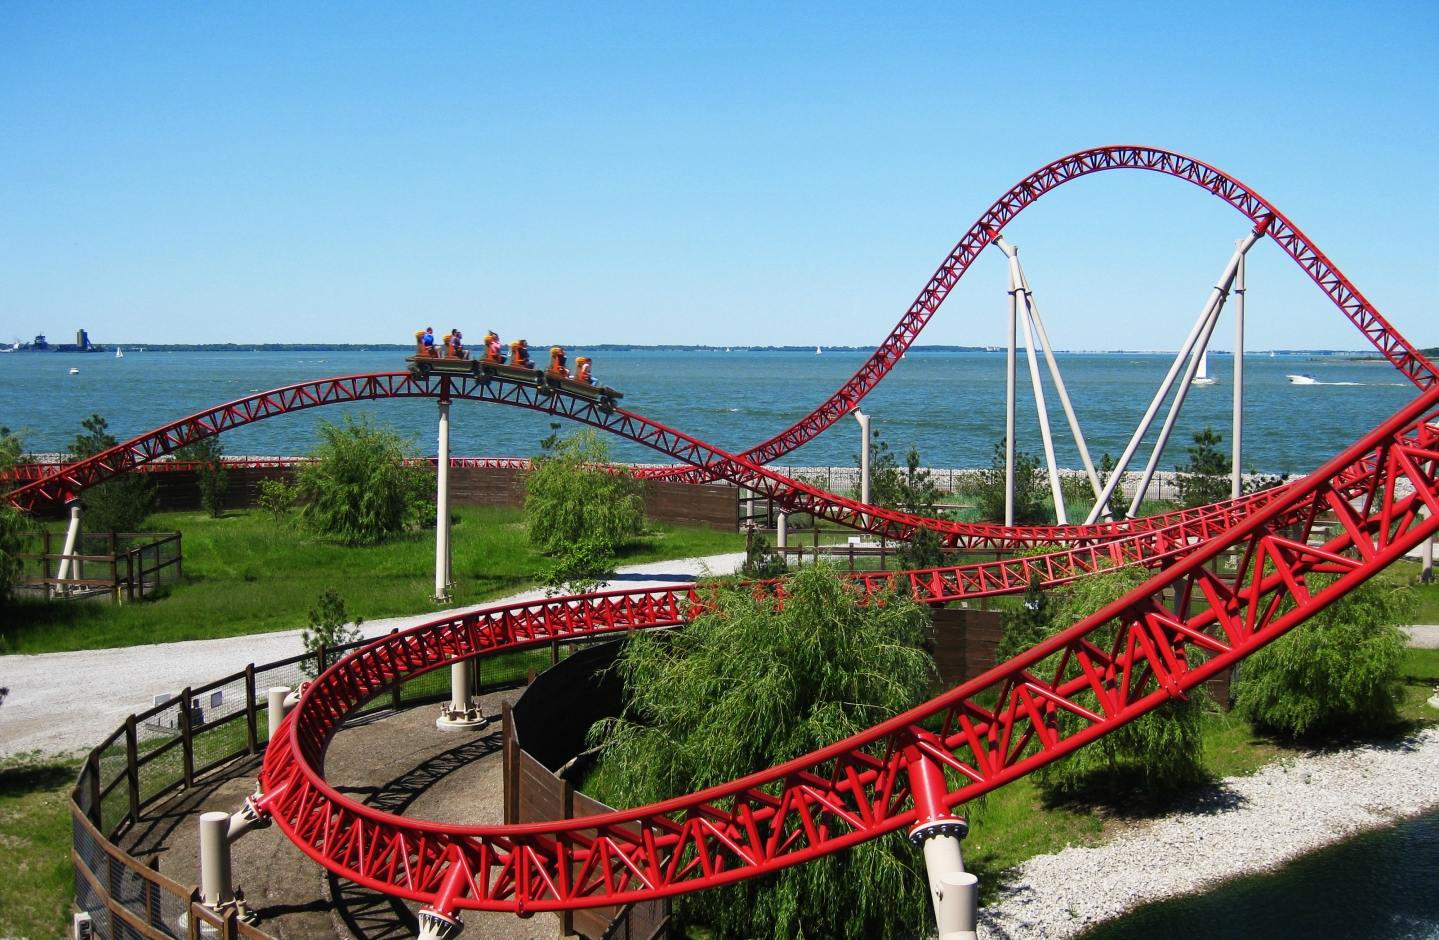 A picture of a roller coaster, near a body of water